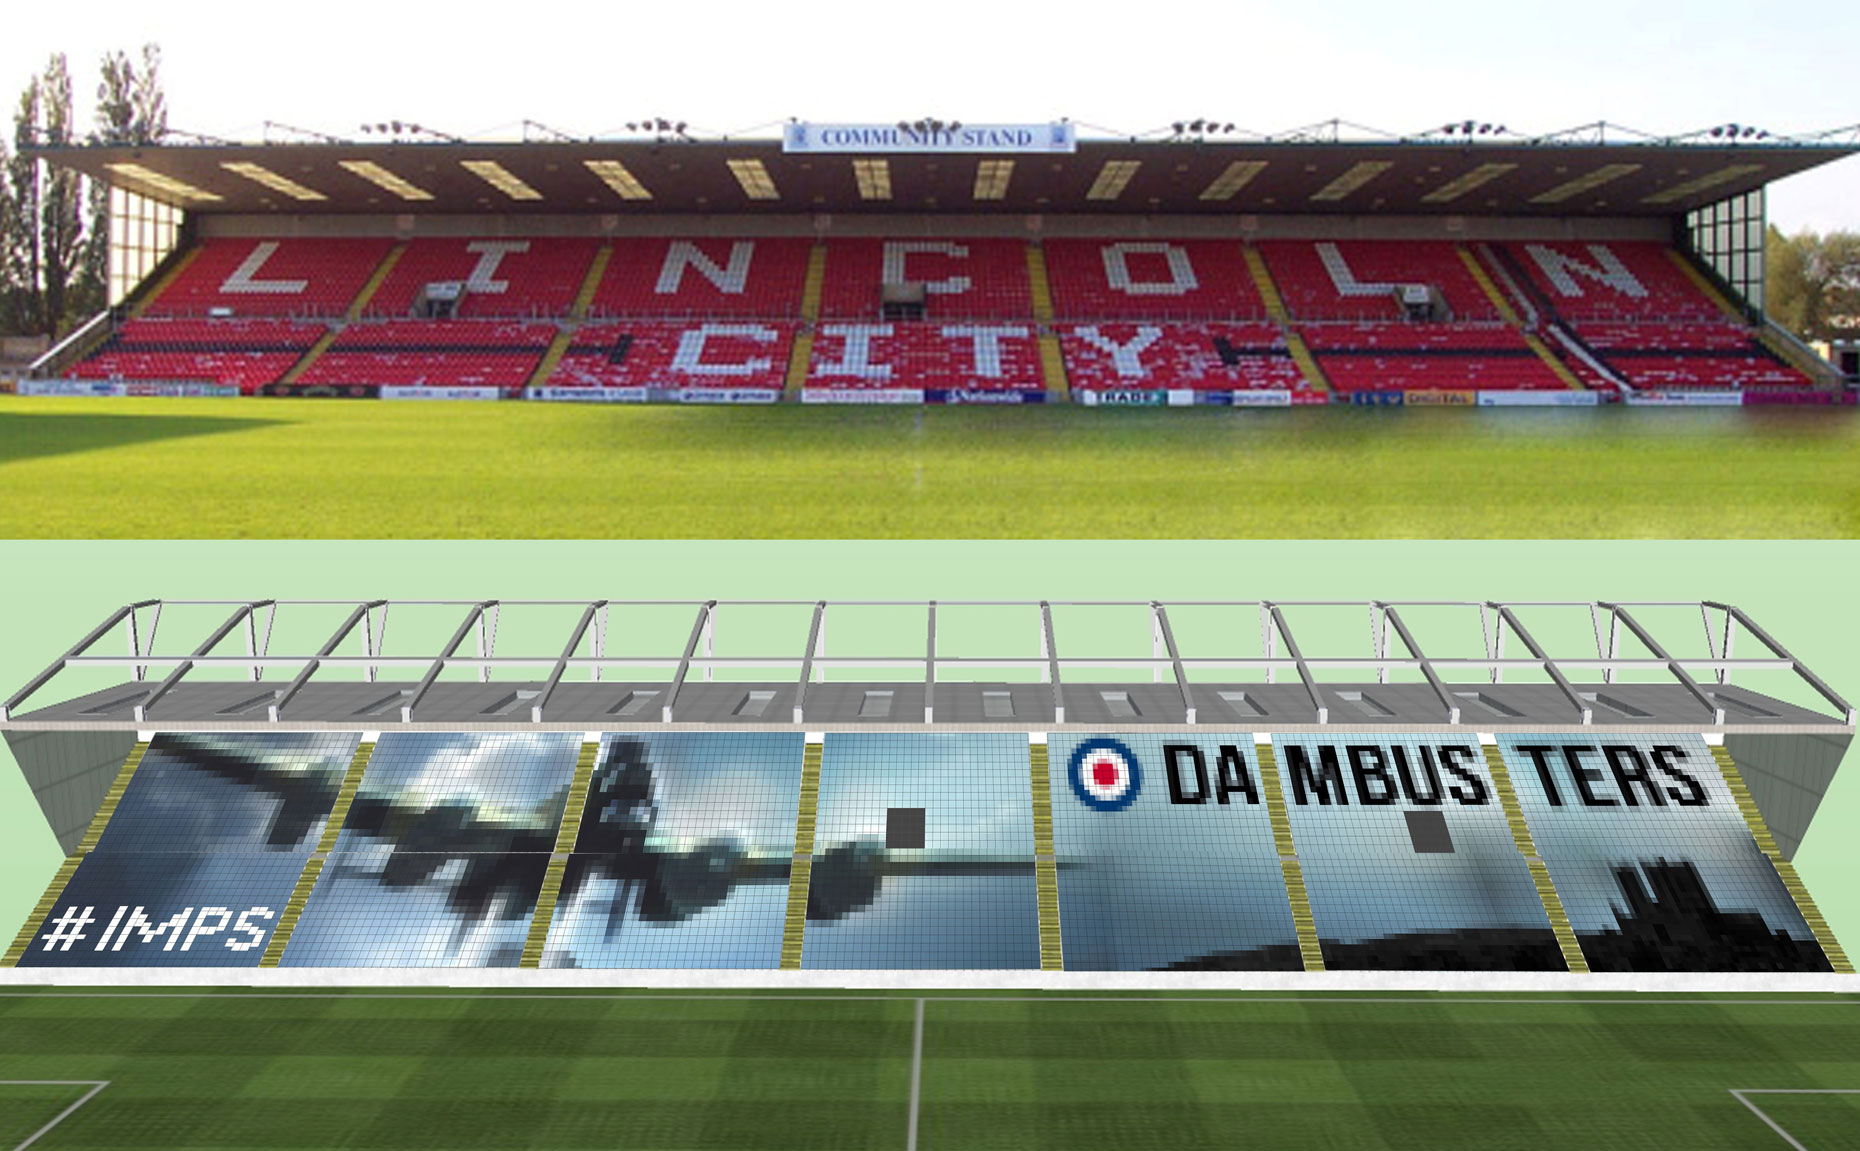 Lincoln City's plans to create a giant Dambusters mosaic to raise funds